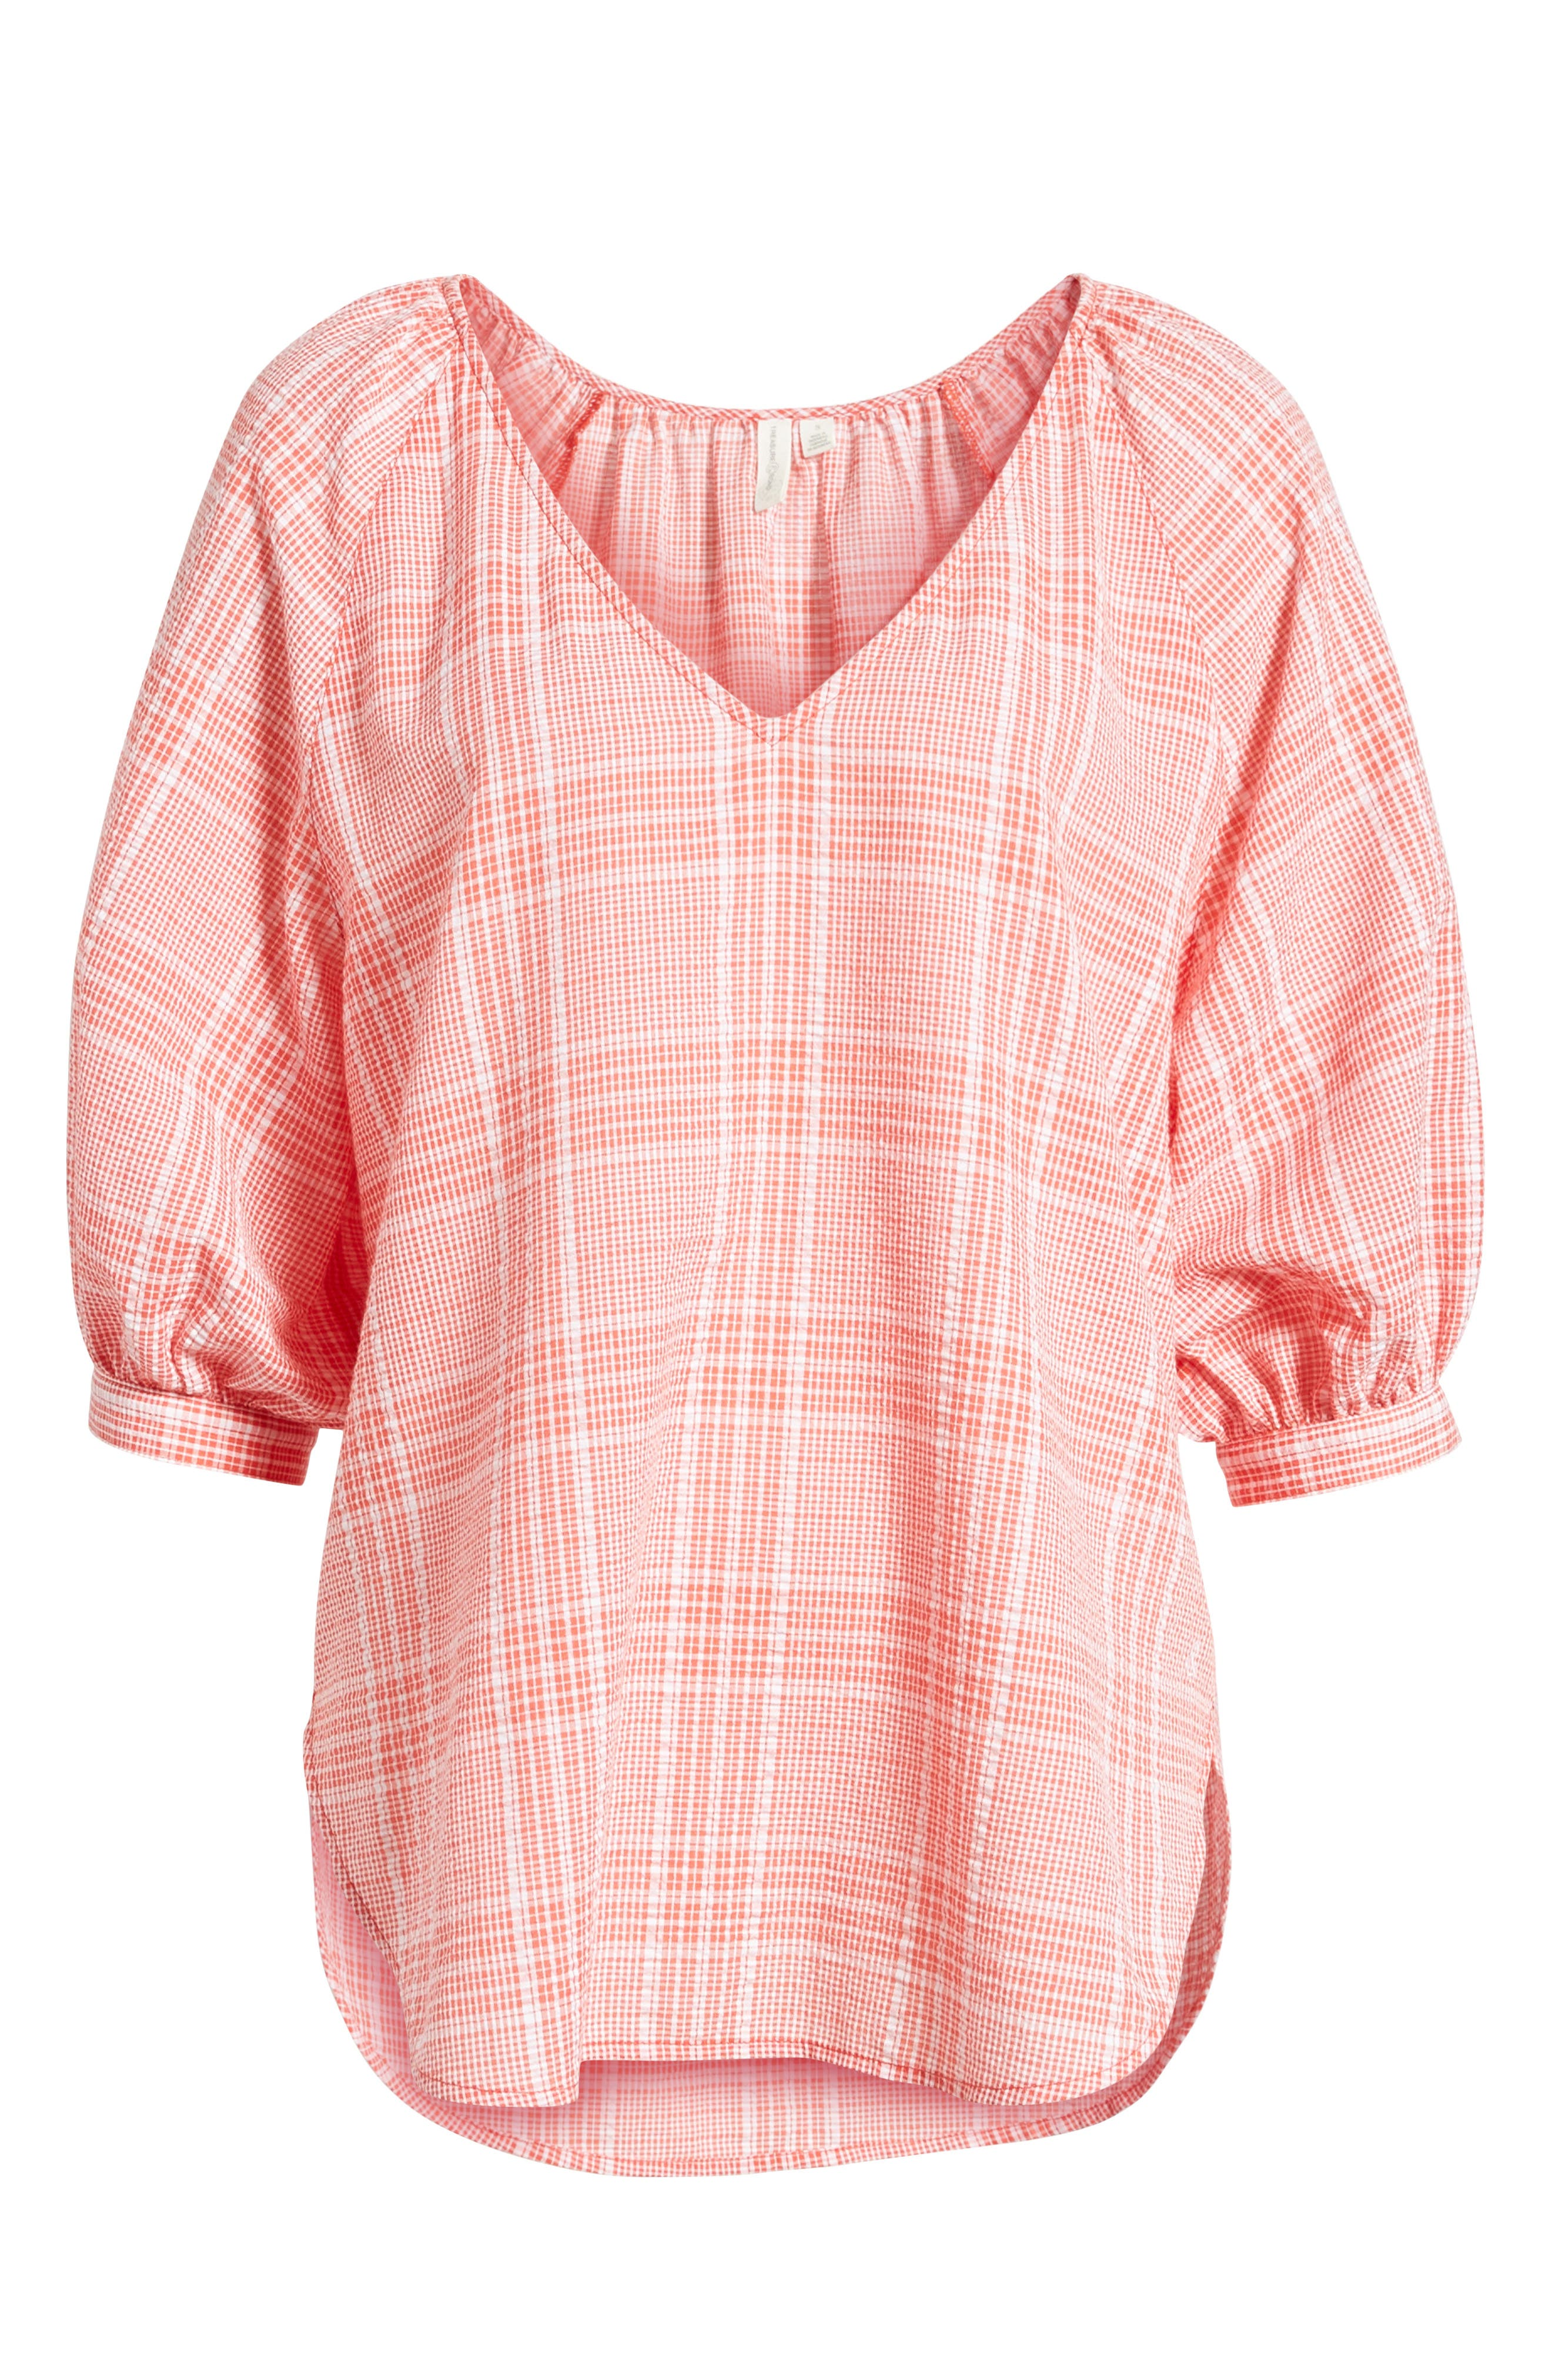 Puff Sleeve Gingham Top,                         Main,                         color, Coral Hot Big Glen